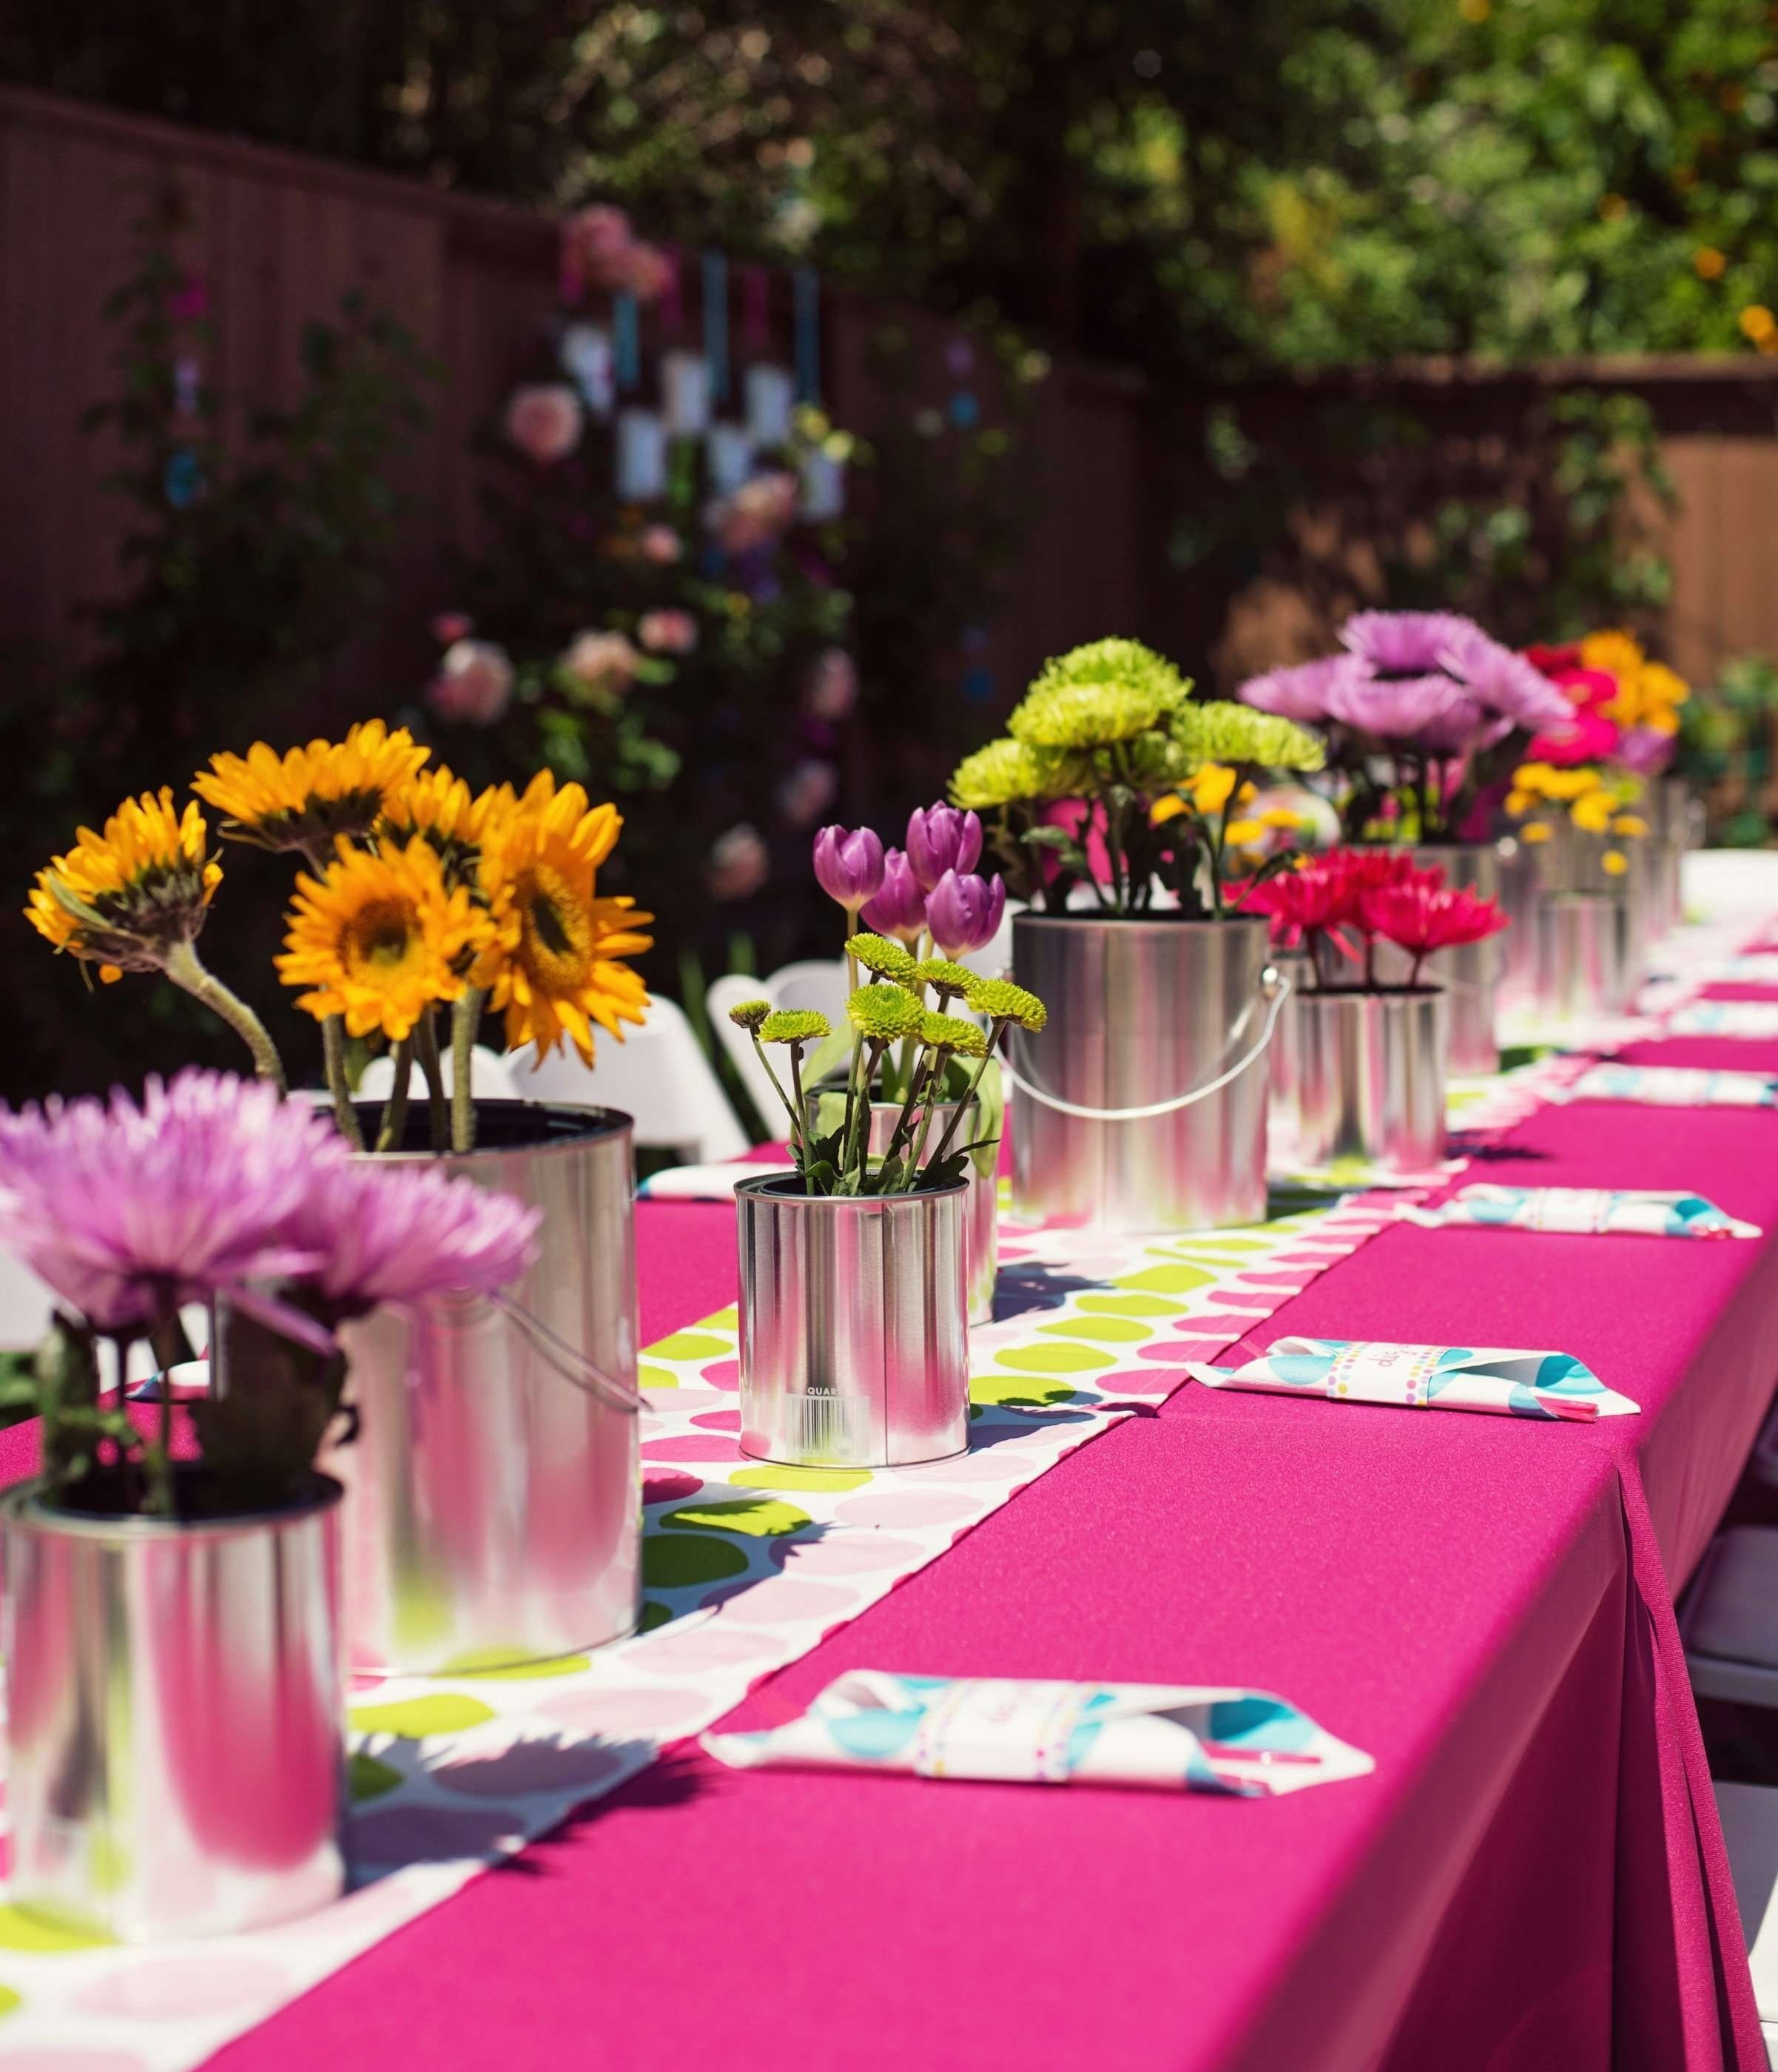 10 Stunning Inexpensive Birthday Party Ideas For Adults elegant inexpensive birthday party ideas for adults birthday